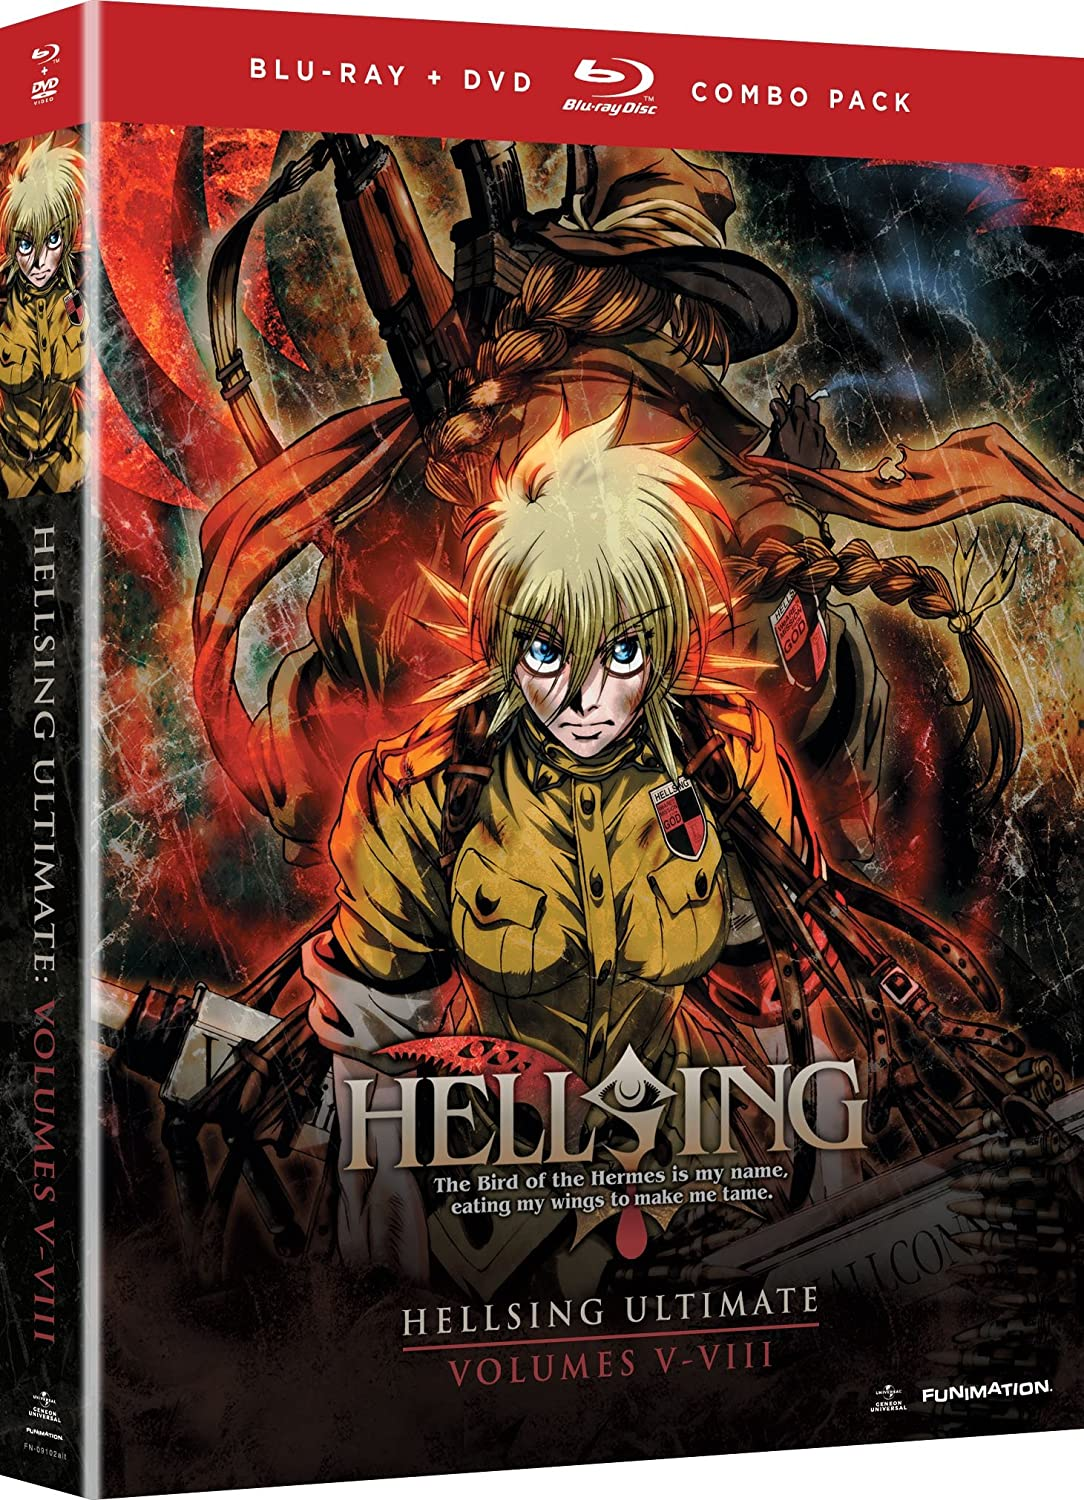 Hellsing Directly managed store Ultimate: Volumes 5 - 8 Collection Max 55% OFF Blu-ray Combo DVD